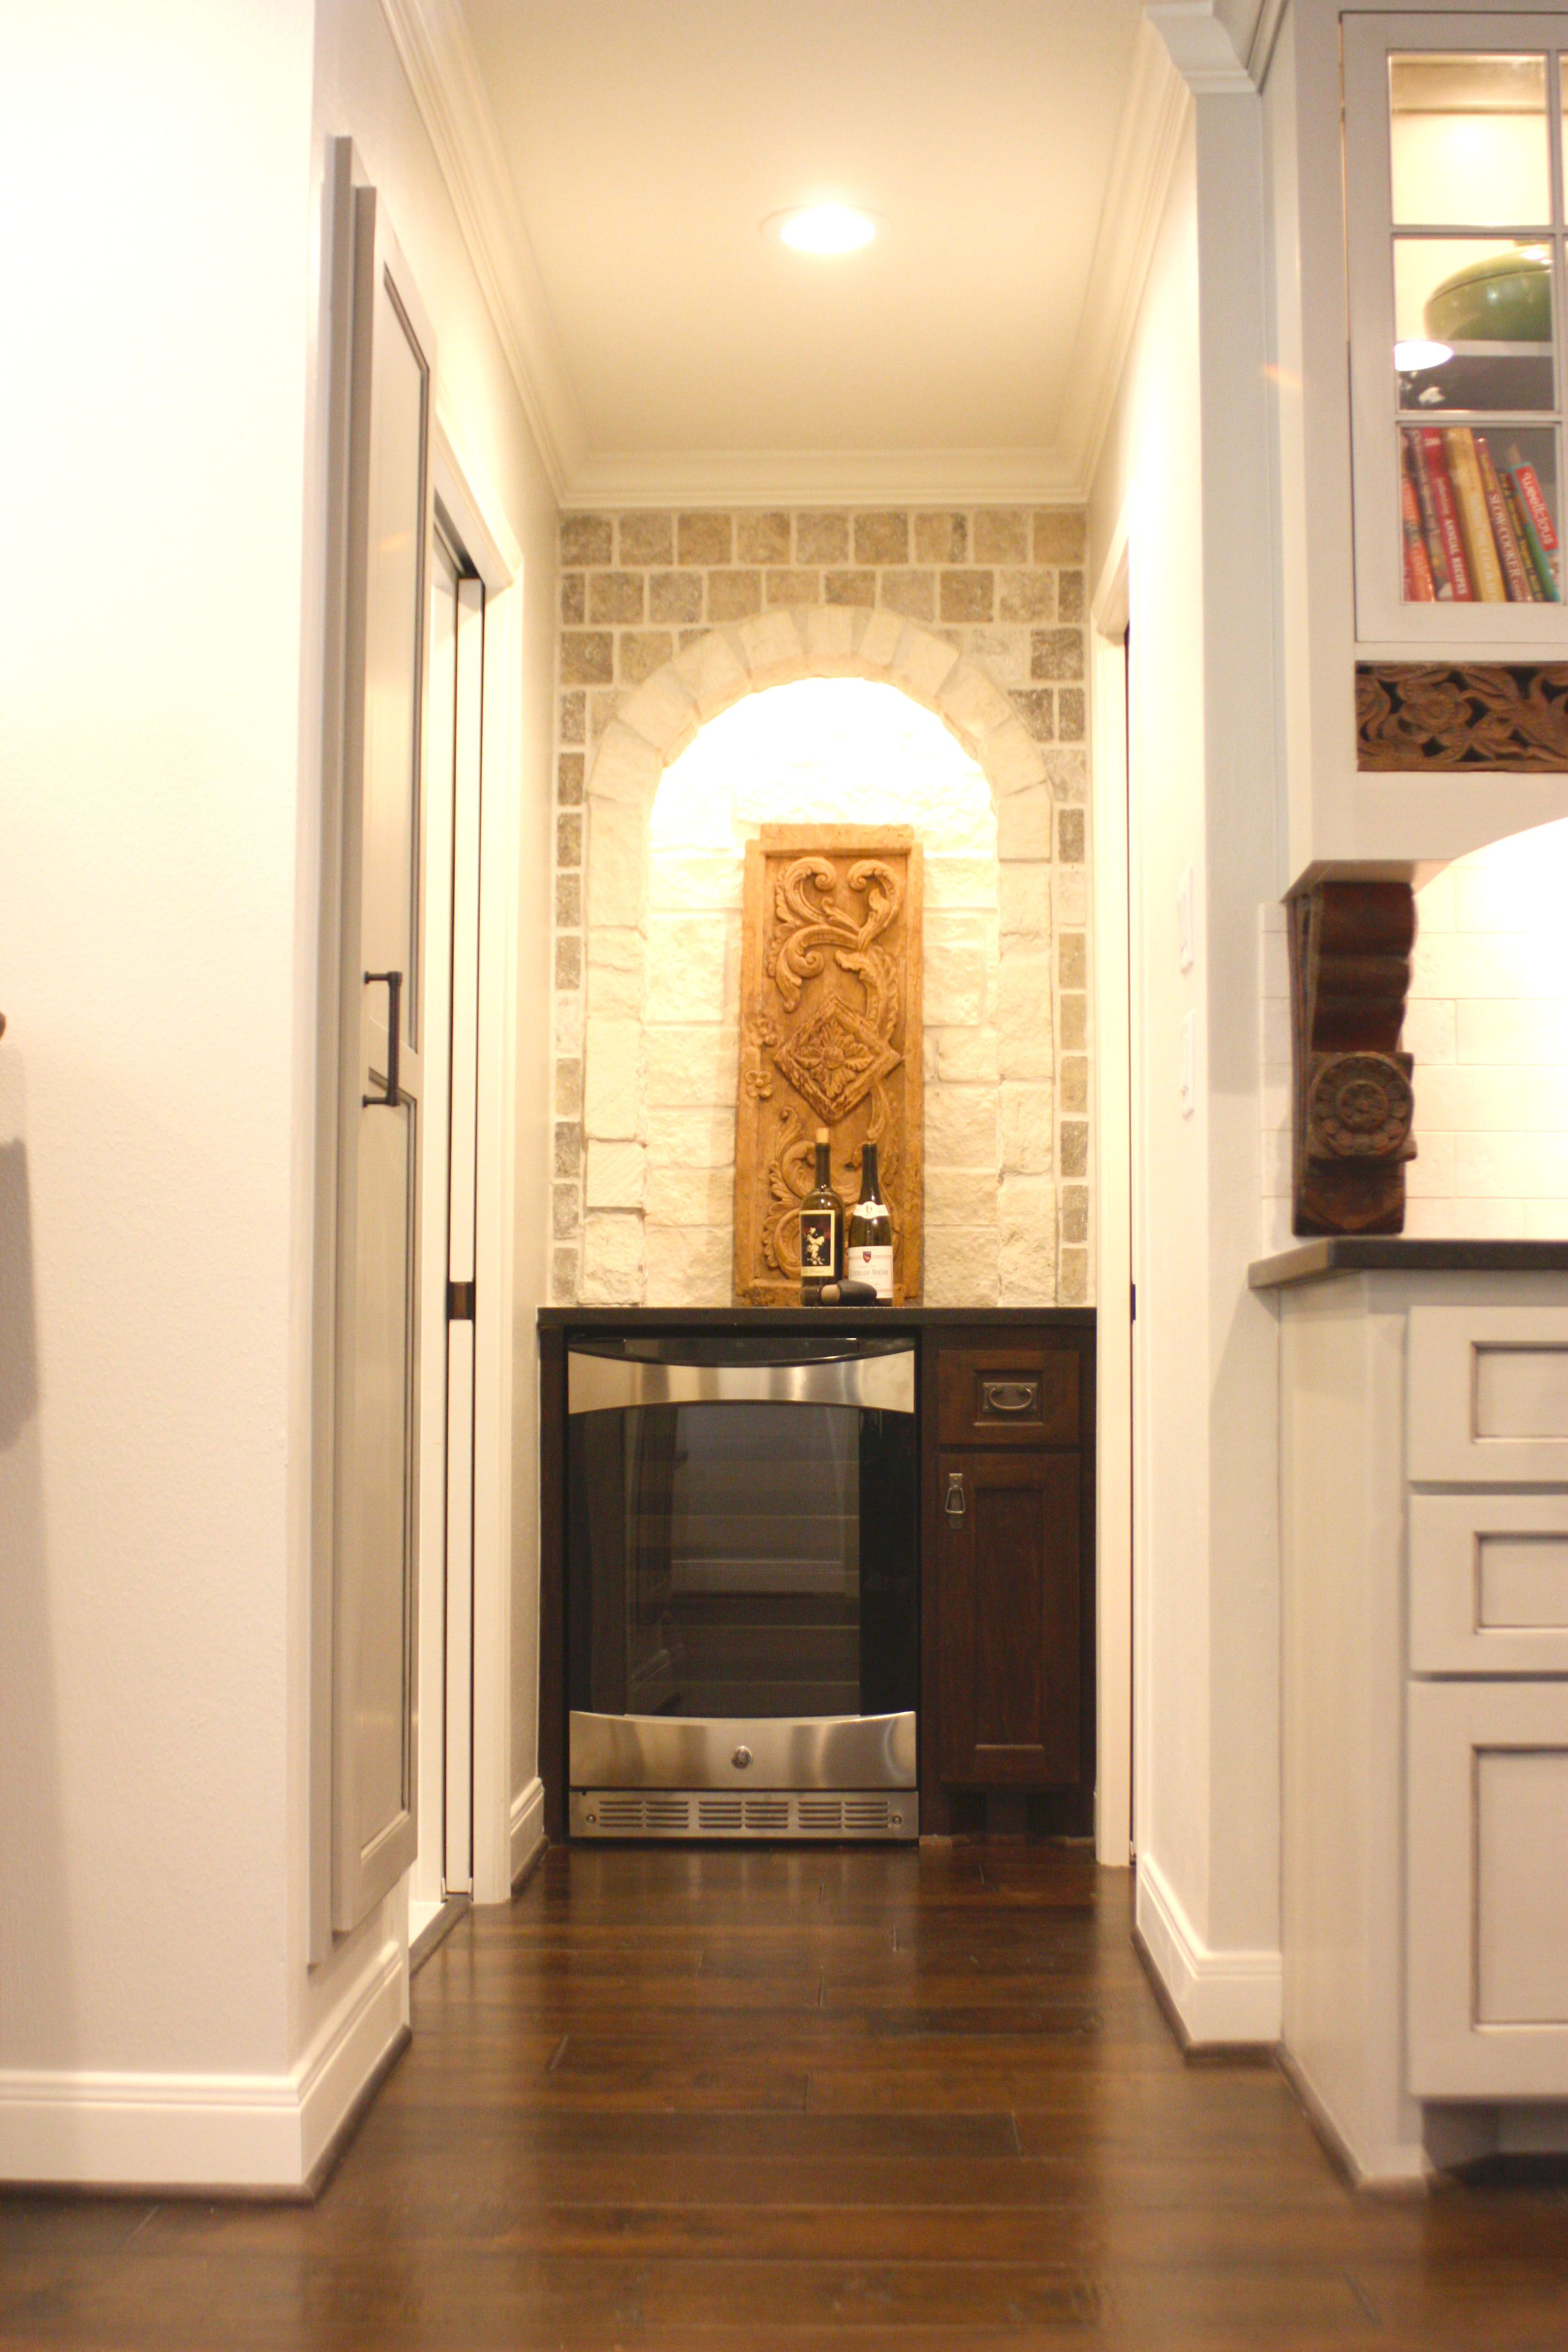 All In The Details With This One Honed Granite Stone Arch Wine Fridge